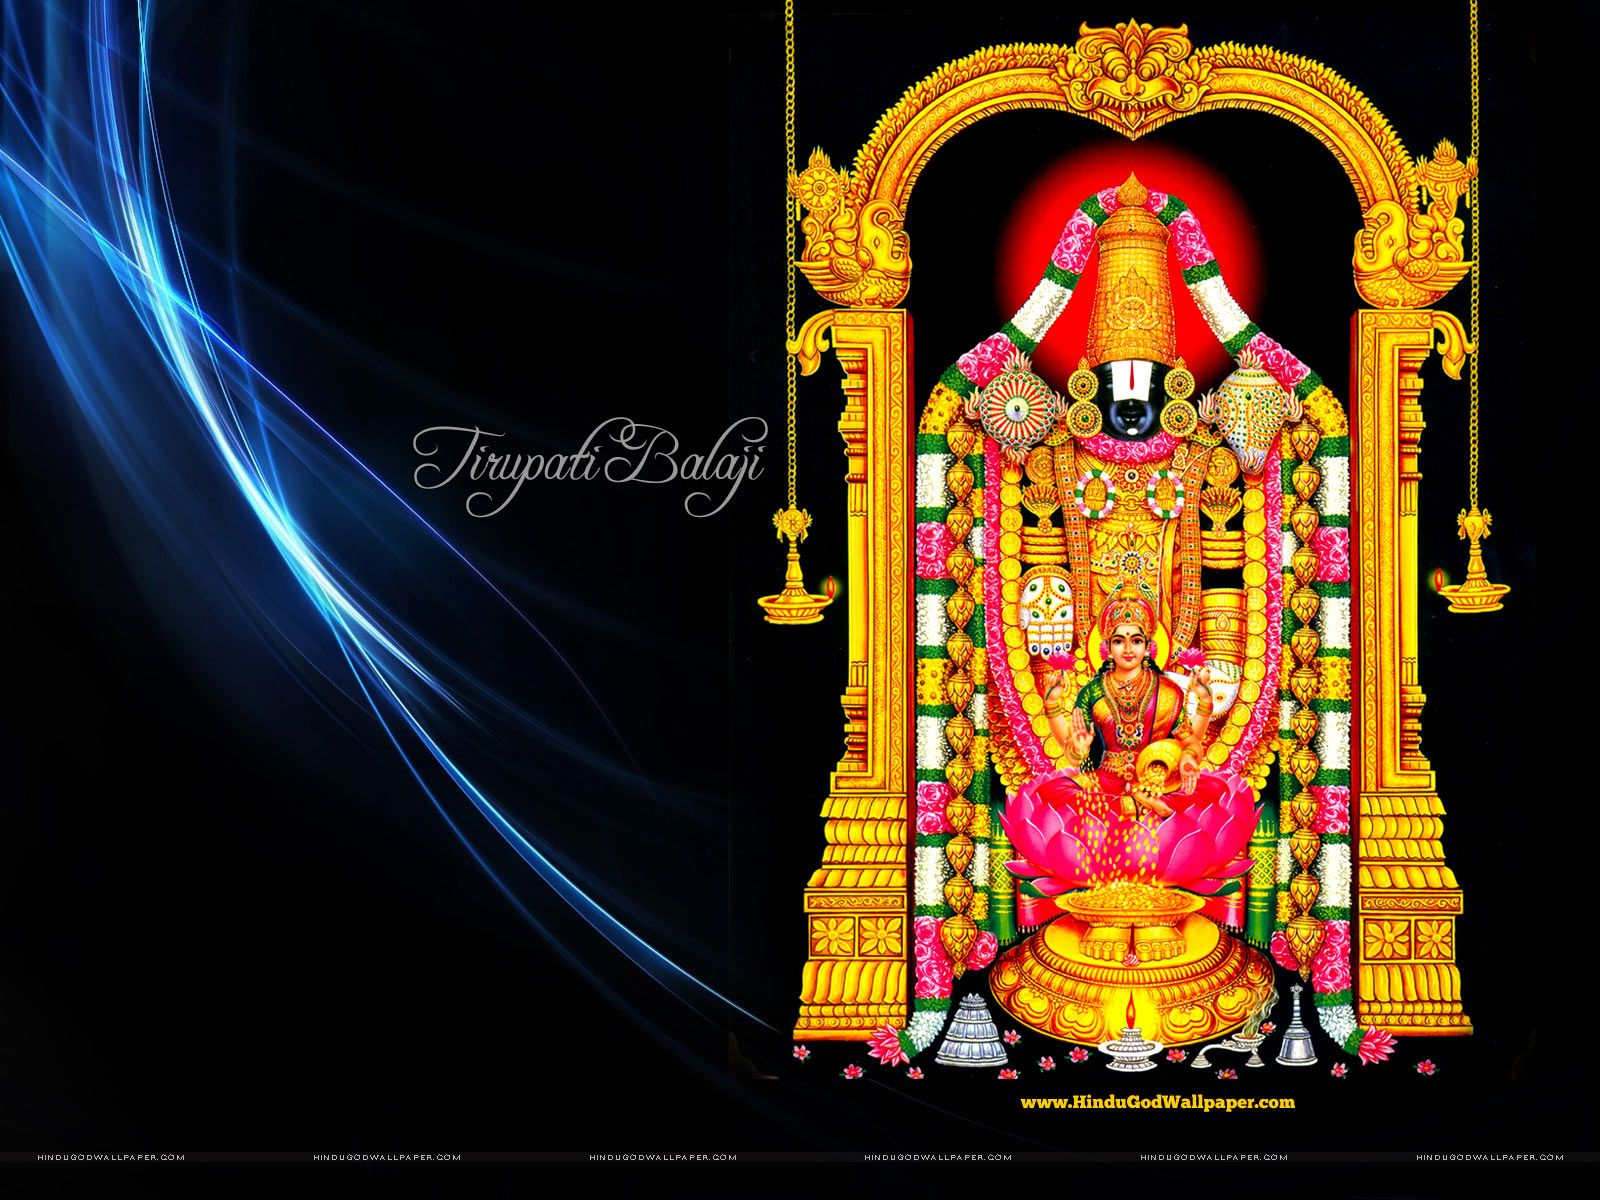 app tirupati balaji live wallpaper apk for windows phone android